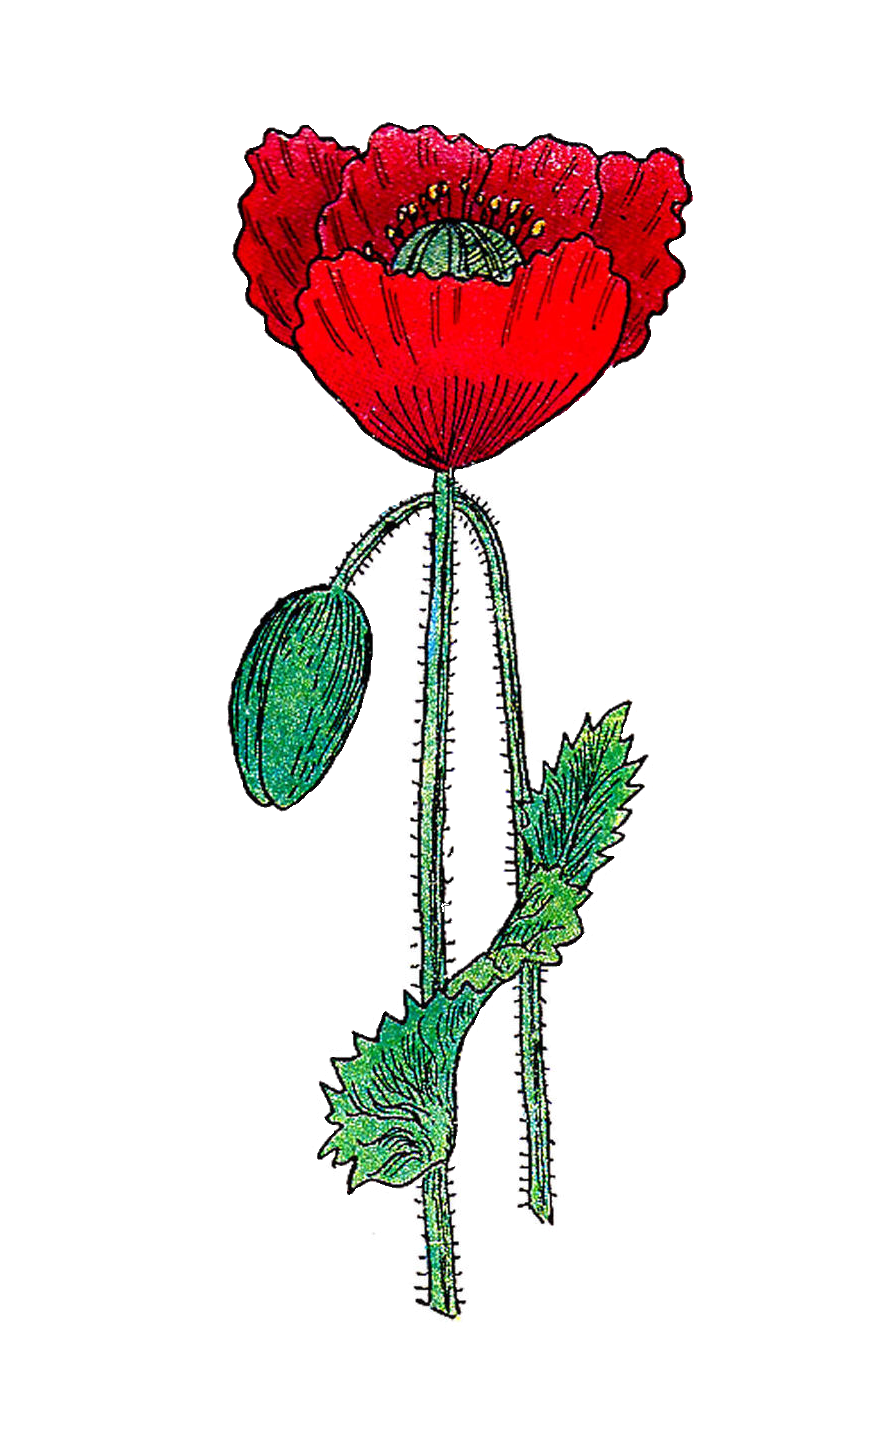 Poppy clipart illustration. Antique images free botanical